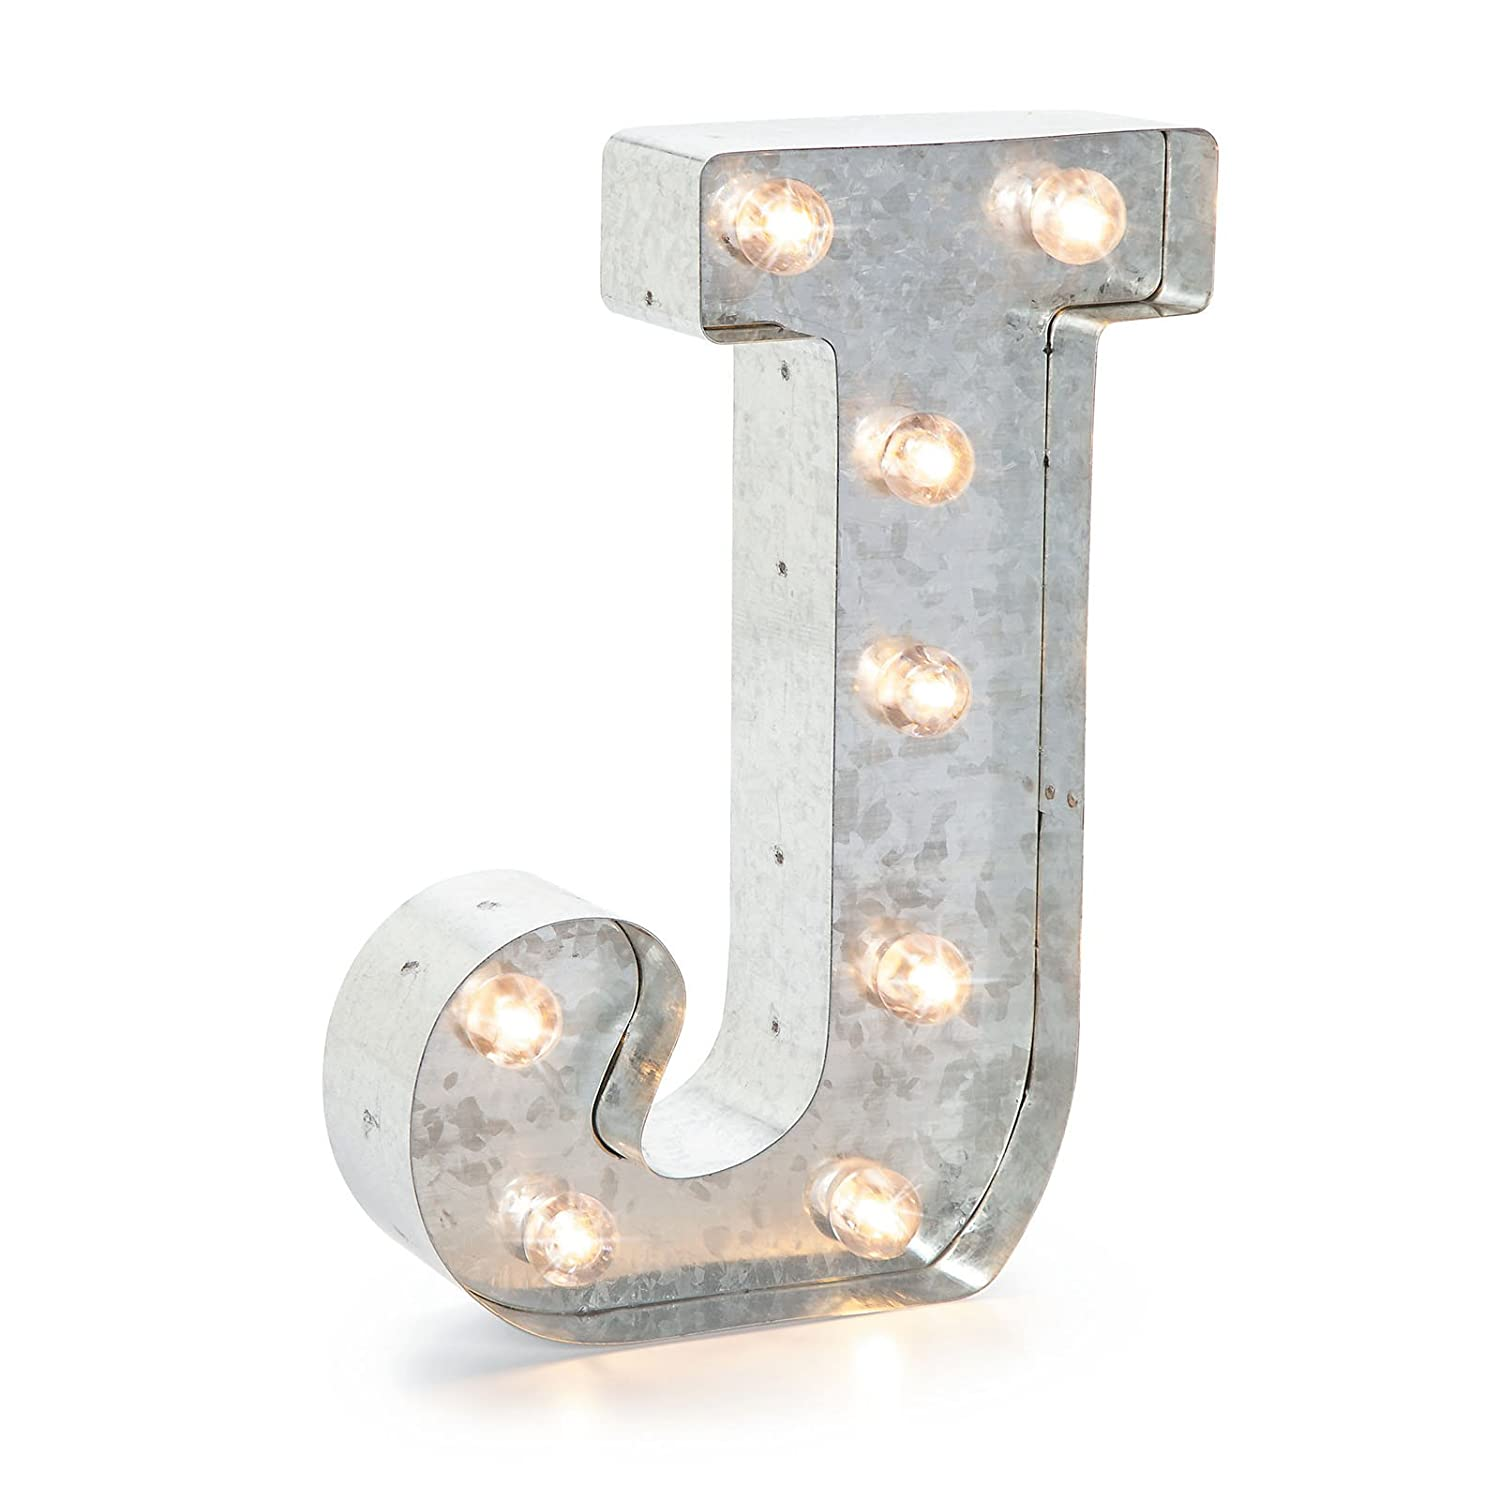 Darice Silver Metal Marquee Letter– J –Vintage-Style Lighted Marquee Letter with On/Off Switch, Ideal for Weddings, Special Events, and Room Décor, Galvanized Metal Finish, 9.87 Inch Tall